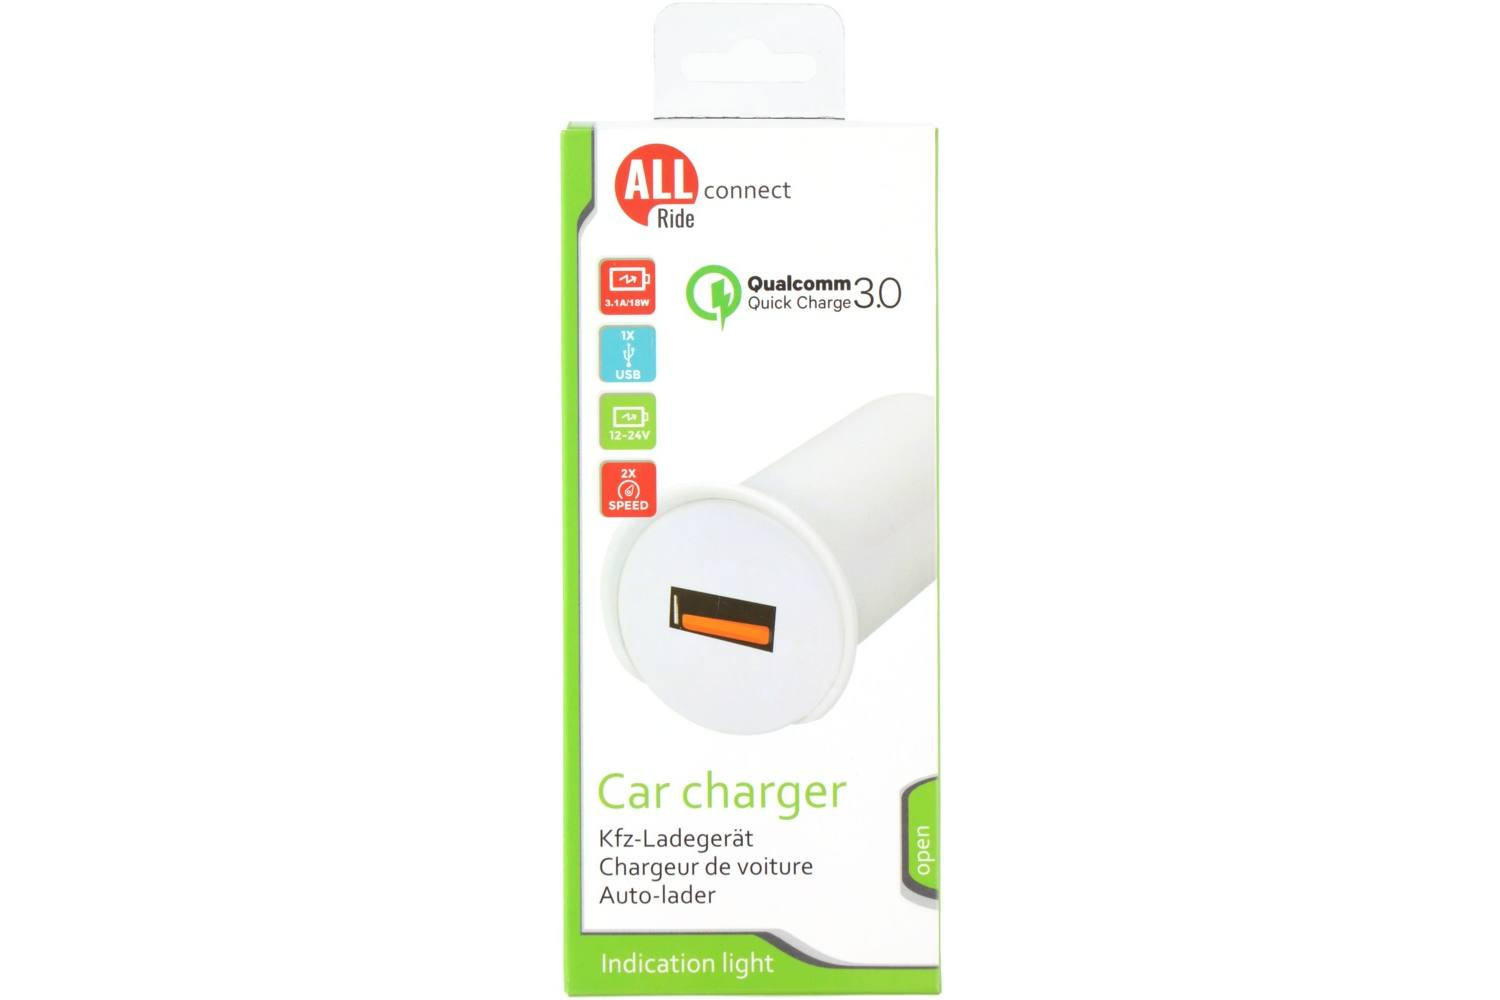 Aanstekerplug oplader, AllRide Connect, 1 USB, Qualcomm Quick Charge 3.0, 12-24V, 3,1A 2